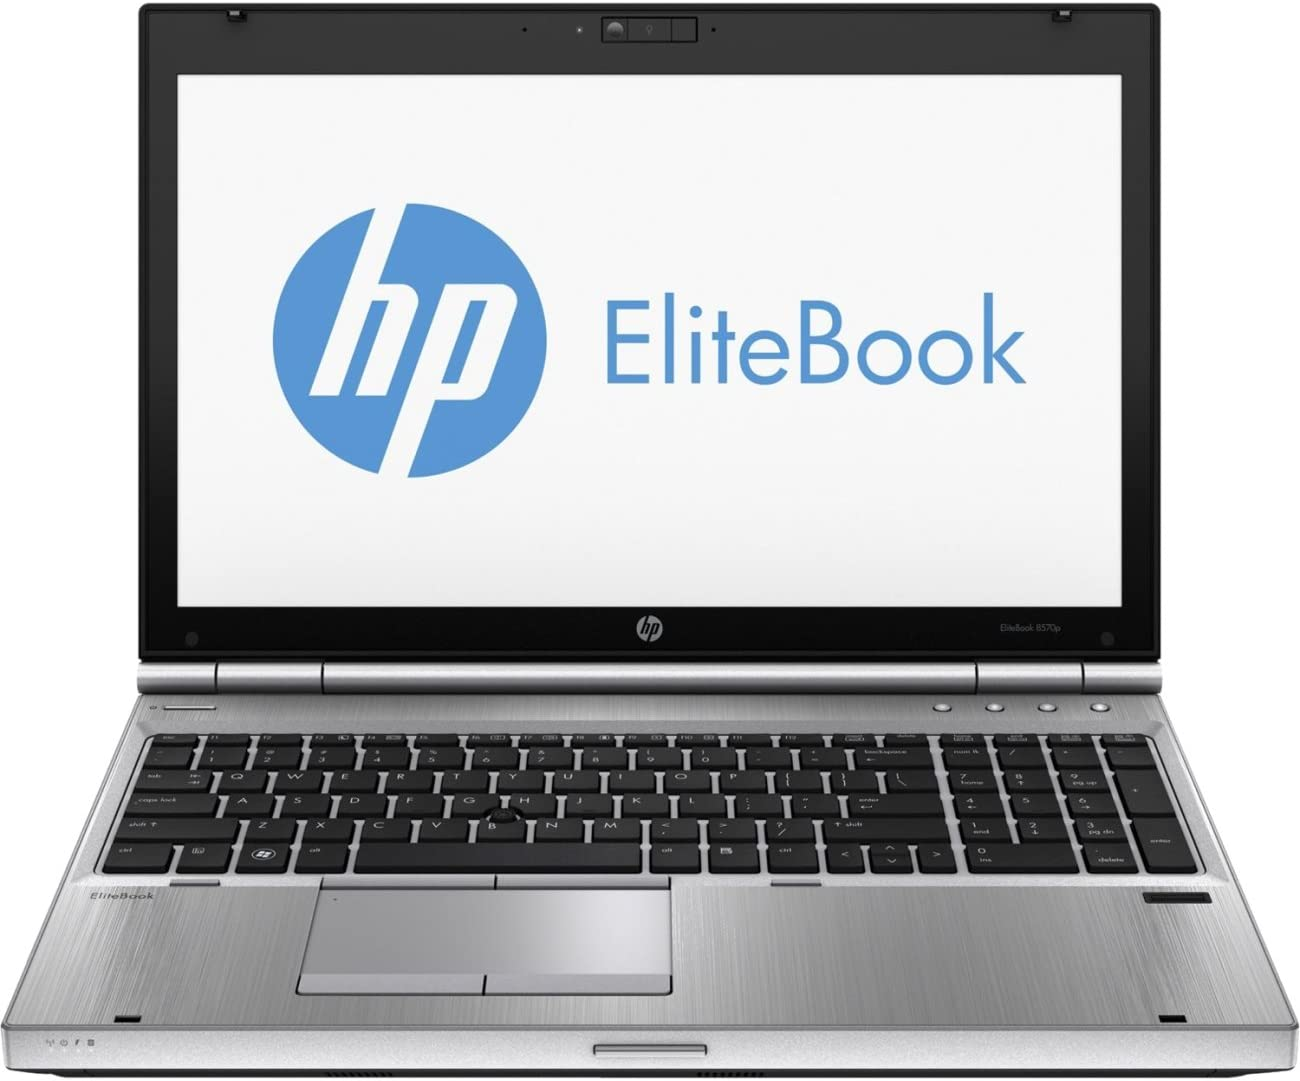 "HP Smart Buy EliteBook 8570p Intel Core i5-3210M 2.50GHz Notebook PC - 4GB RAM, 500GB HDD, 15.6"" LED-backlit HD, DVD+/-RW SuperMulti, 802.11a/b/g/n, Bluetooth, Webcam, TPM, Fingerprint Sensor, 6-cell Li-Ion"